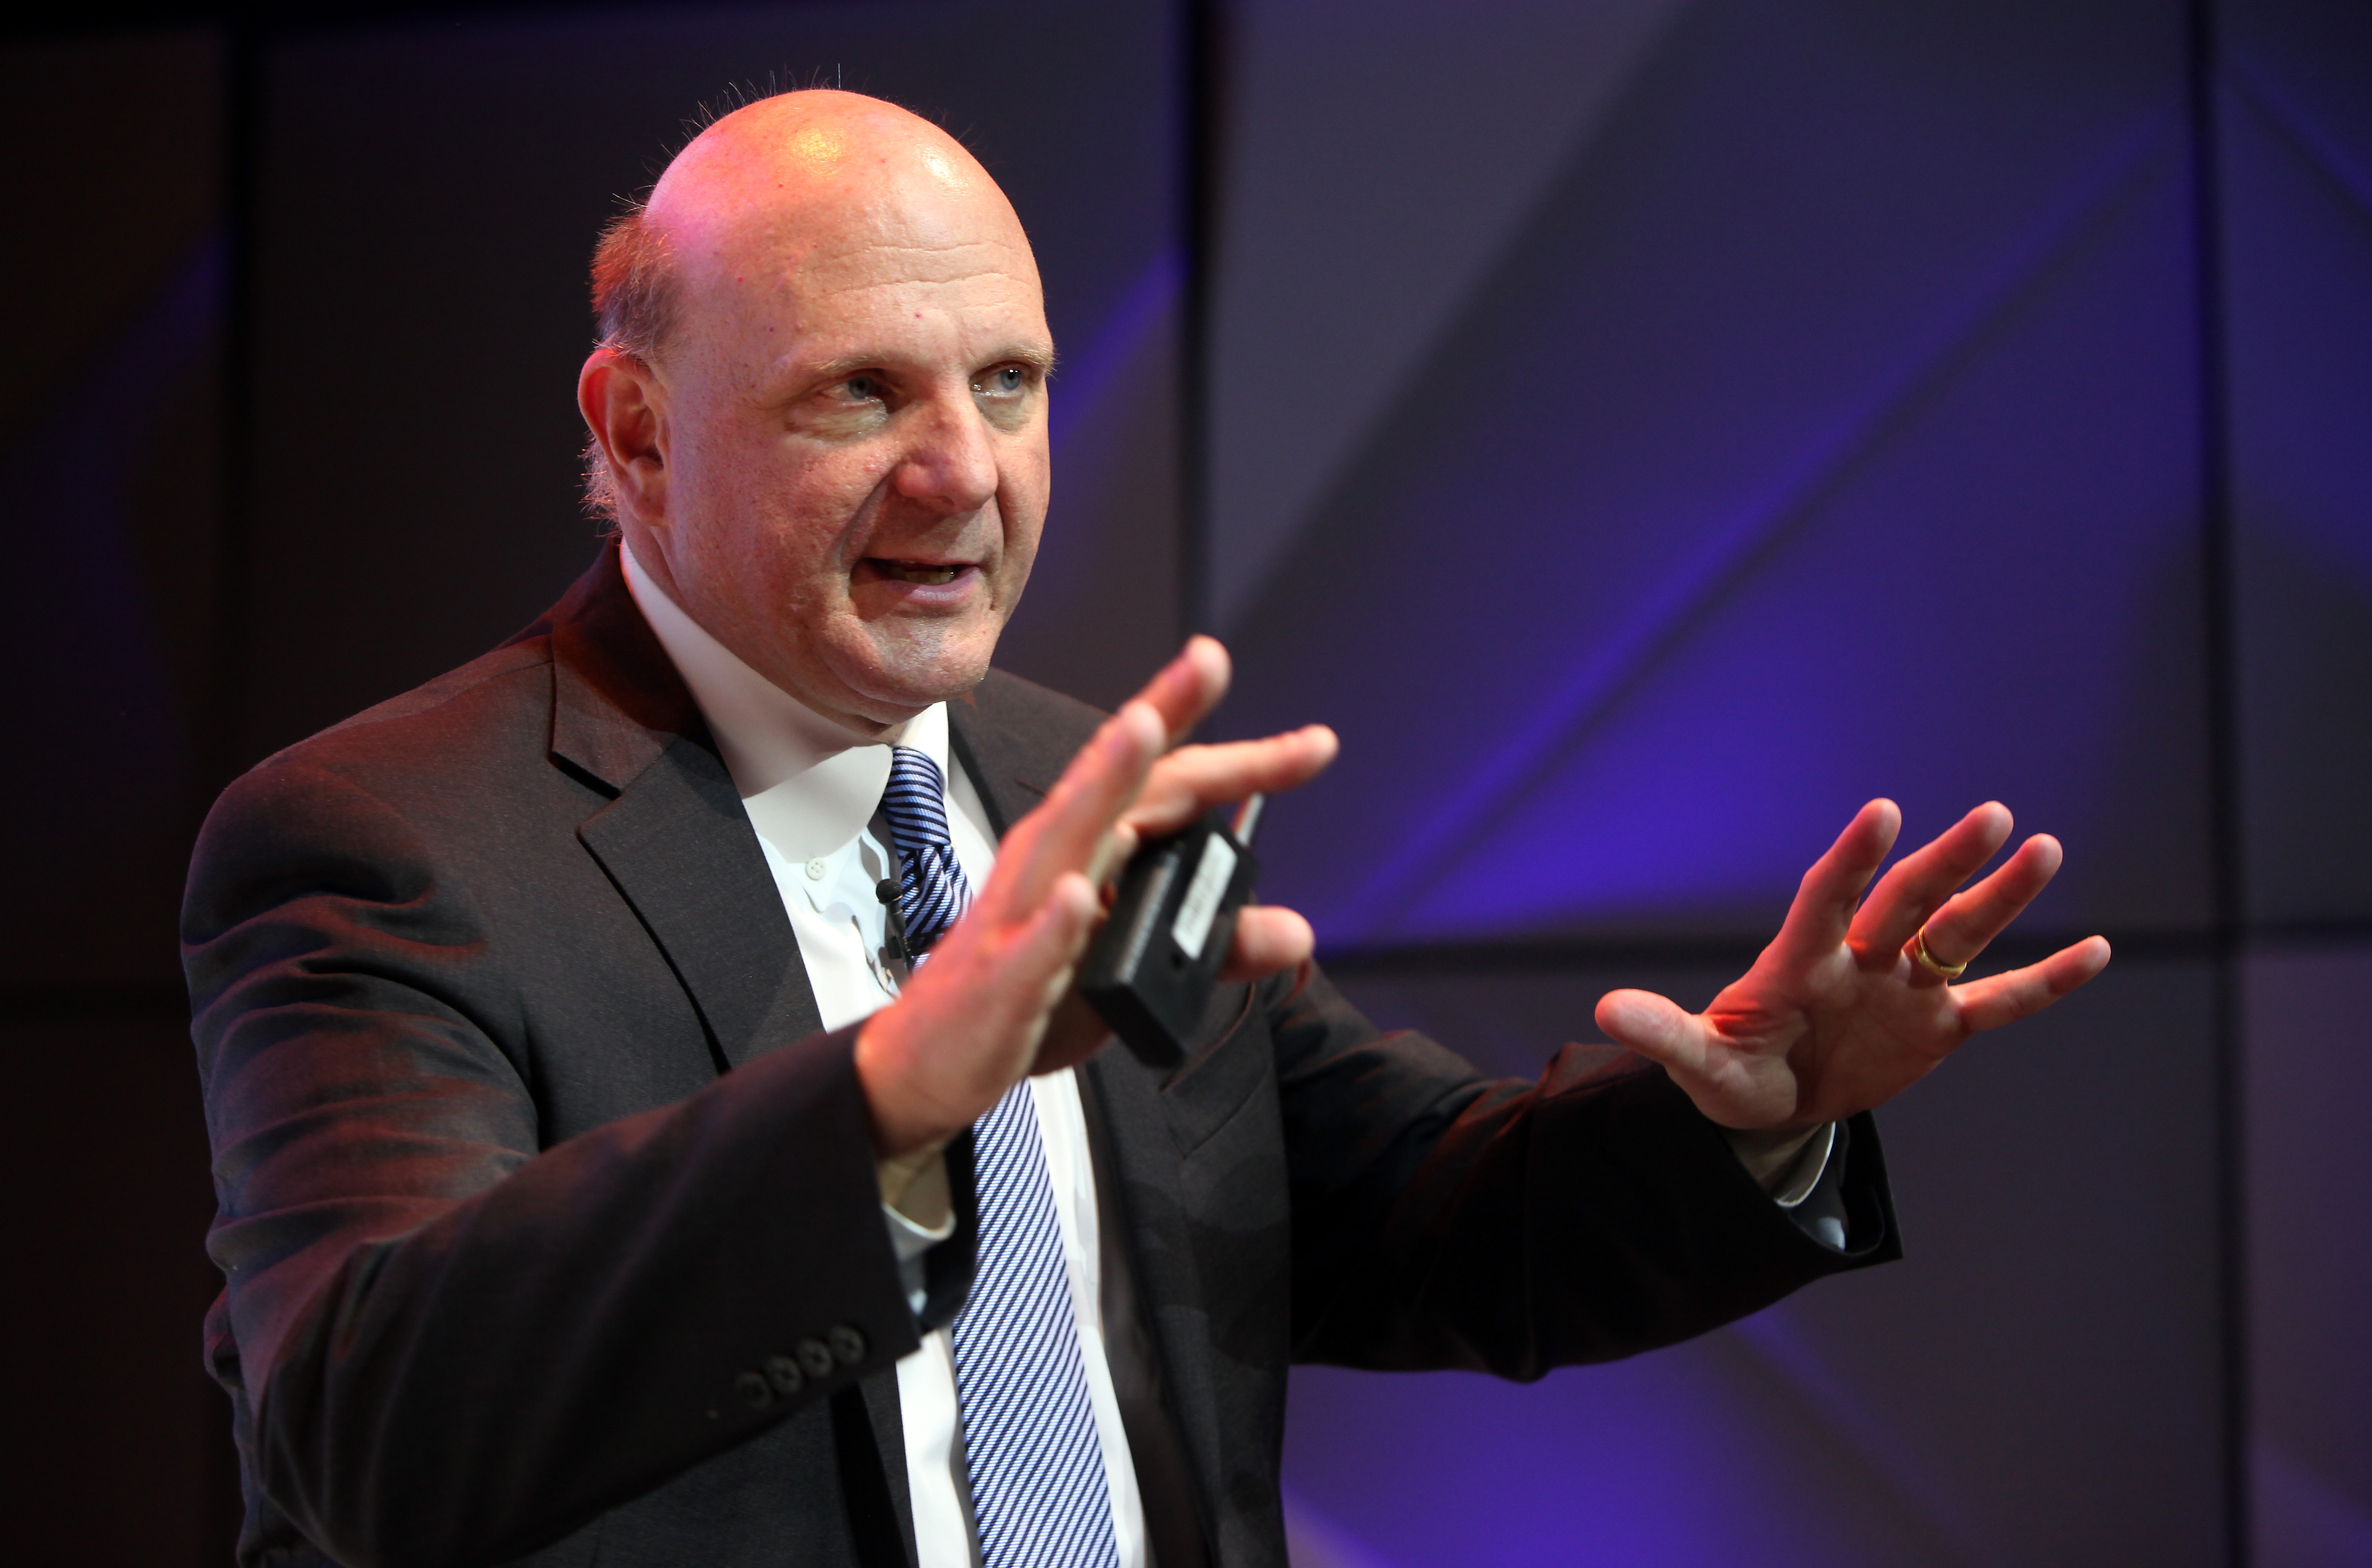 Microsoft Chief Executive Steve Ballmer speaks at the opening of the Microsoft Center Berlin on November 7, 2013 in Berlin, Germany.